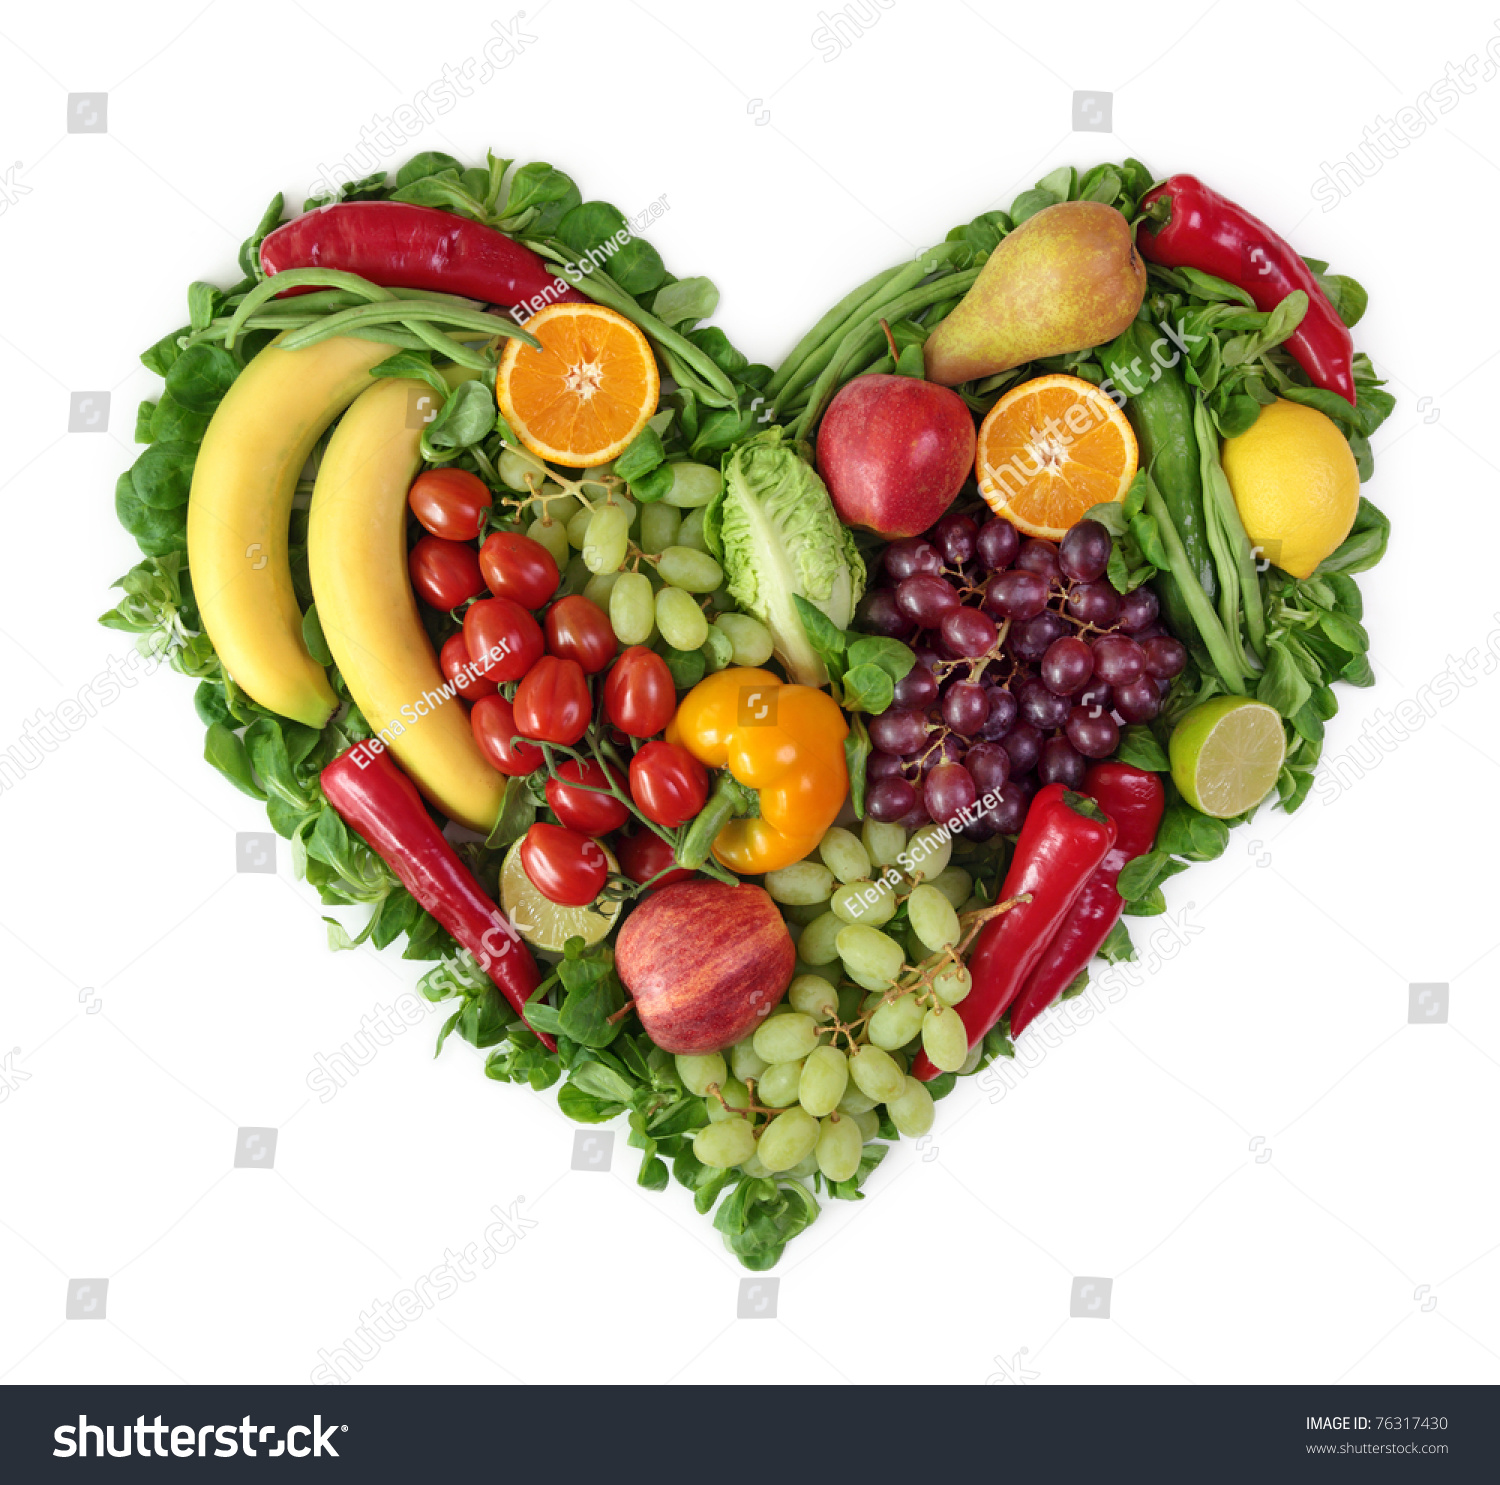 are all fruits healthy is the tomato a fruit or a vegetable